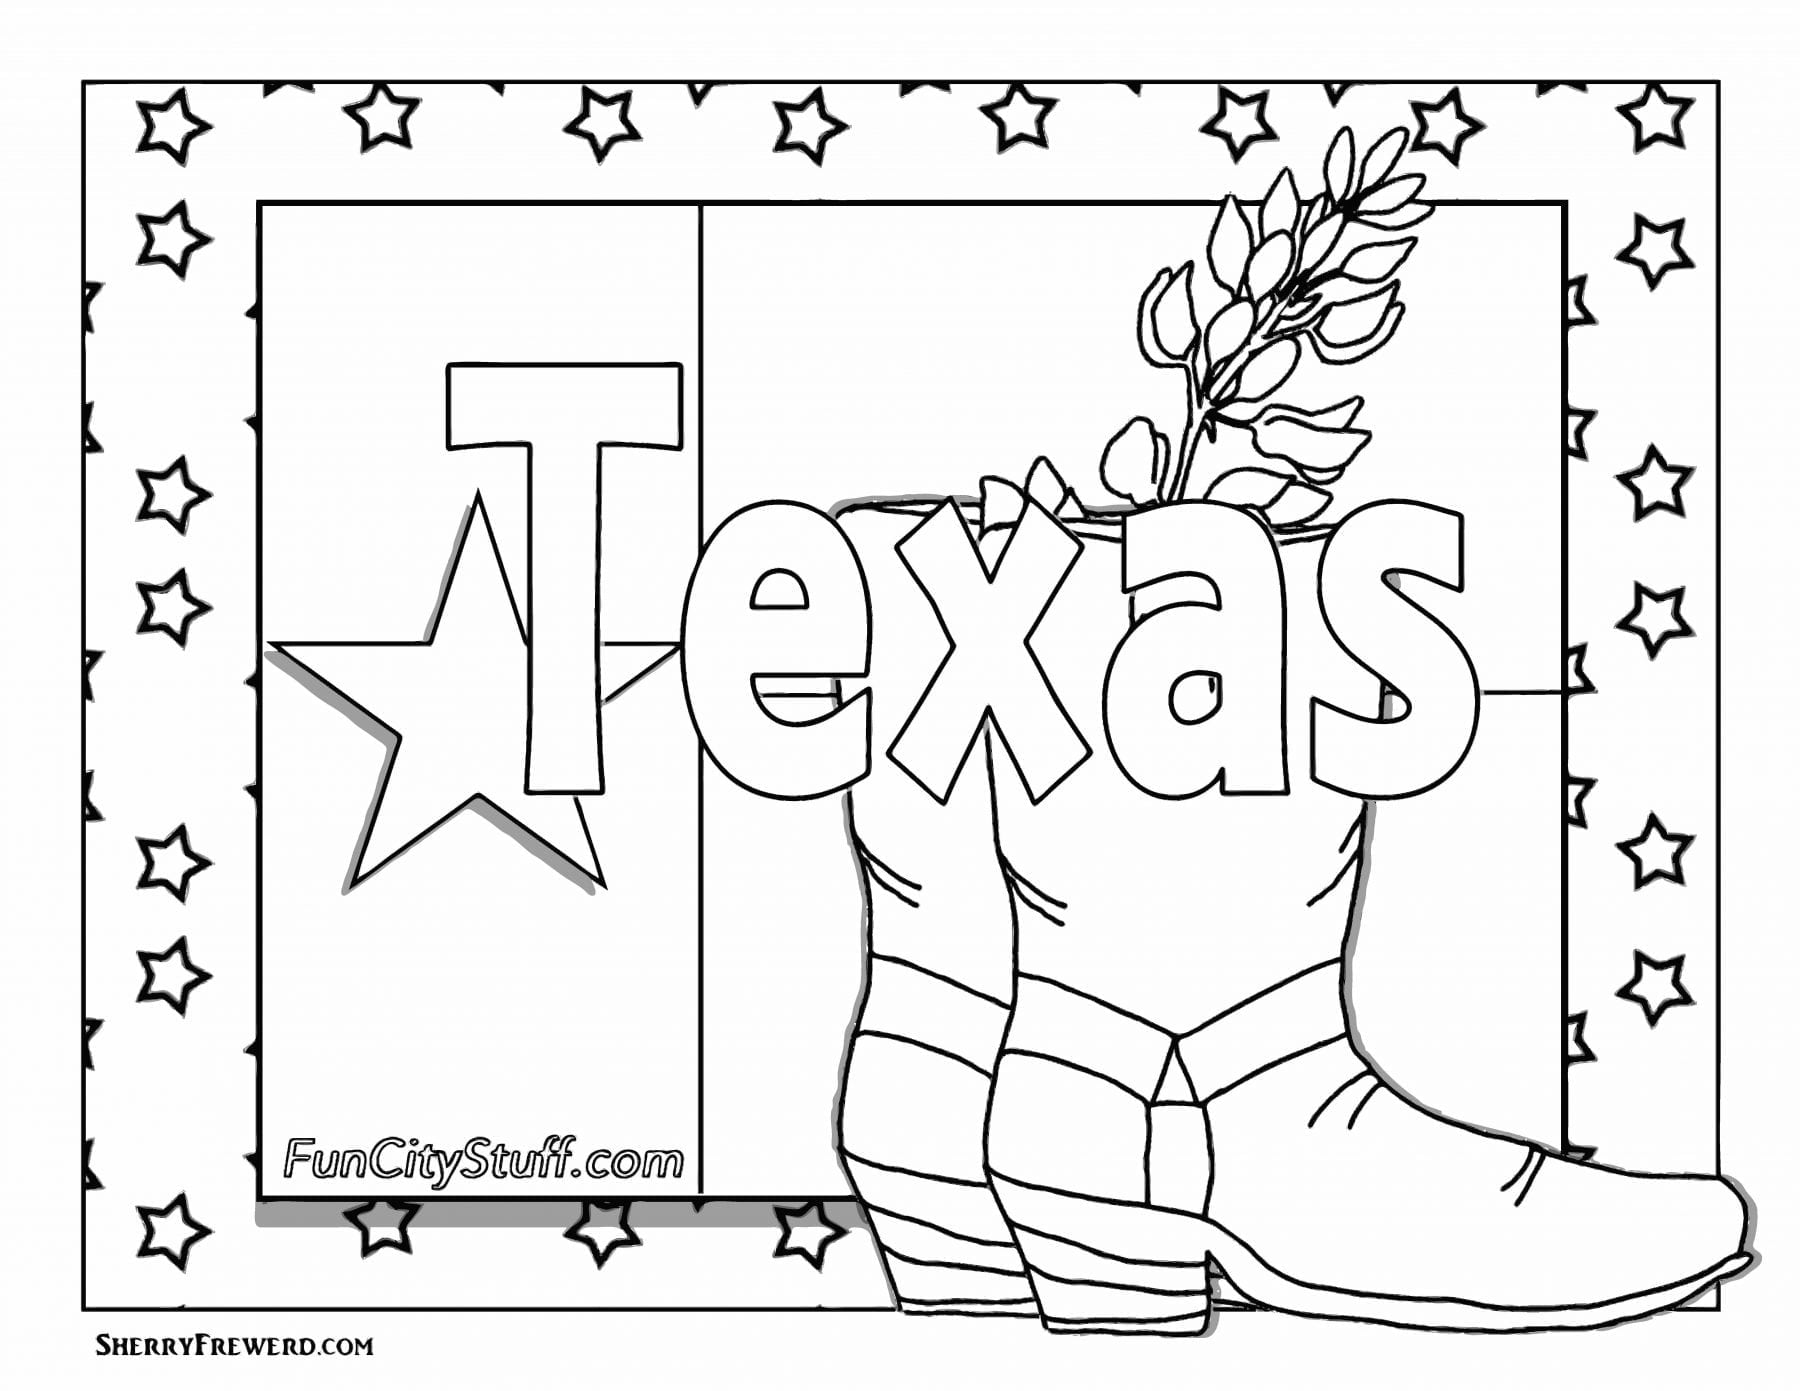 Color Your Cares Away - Texas Style! - FunCity Stuff DFW